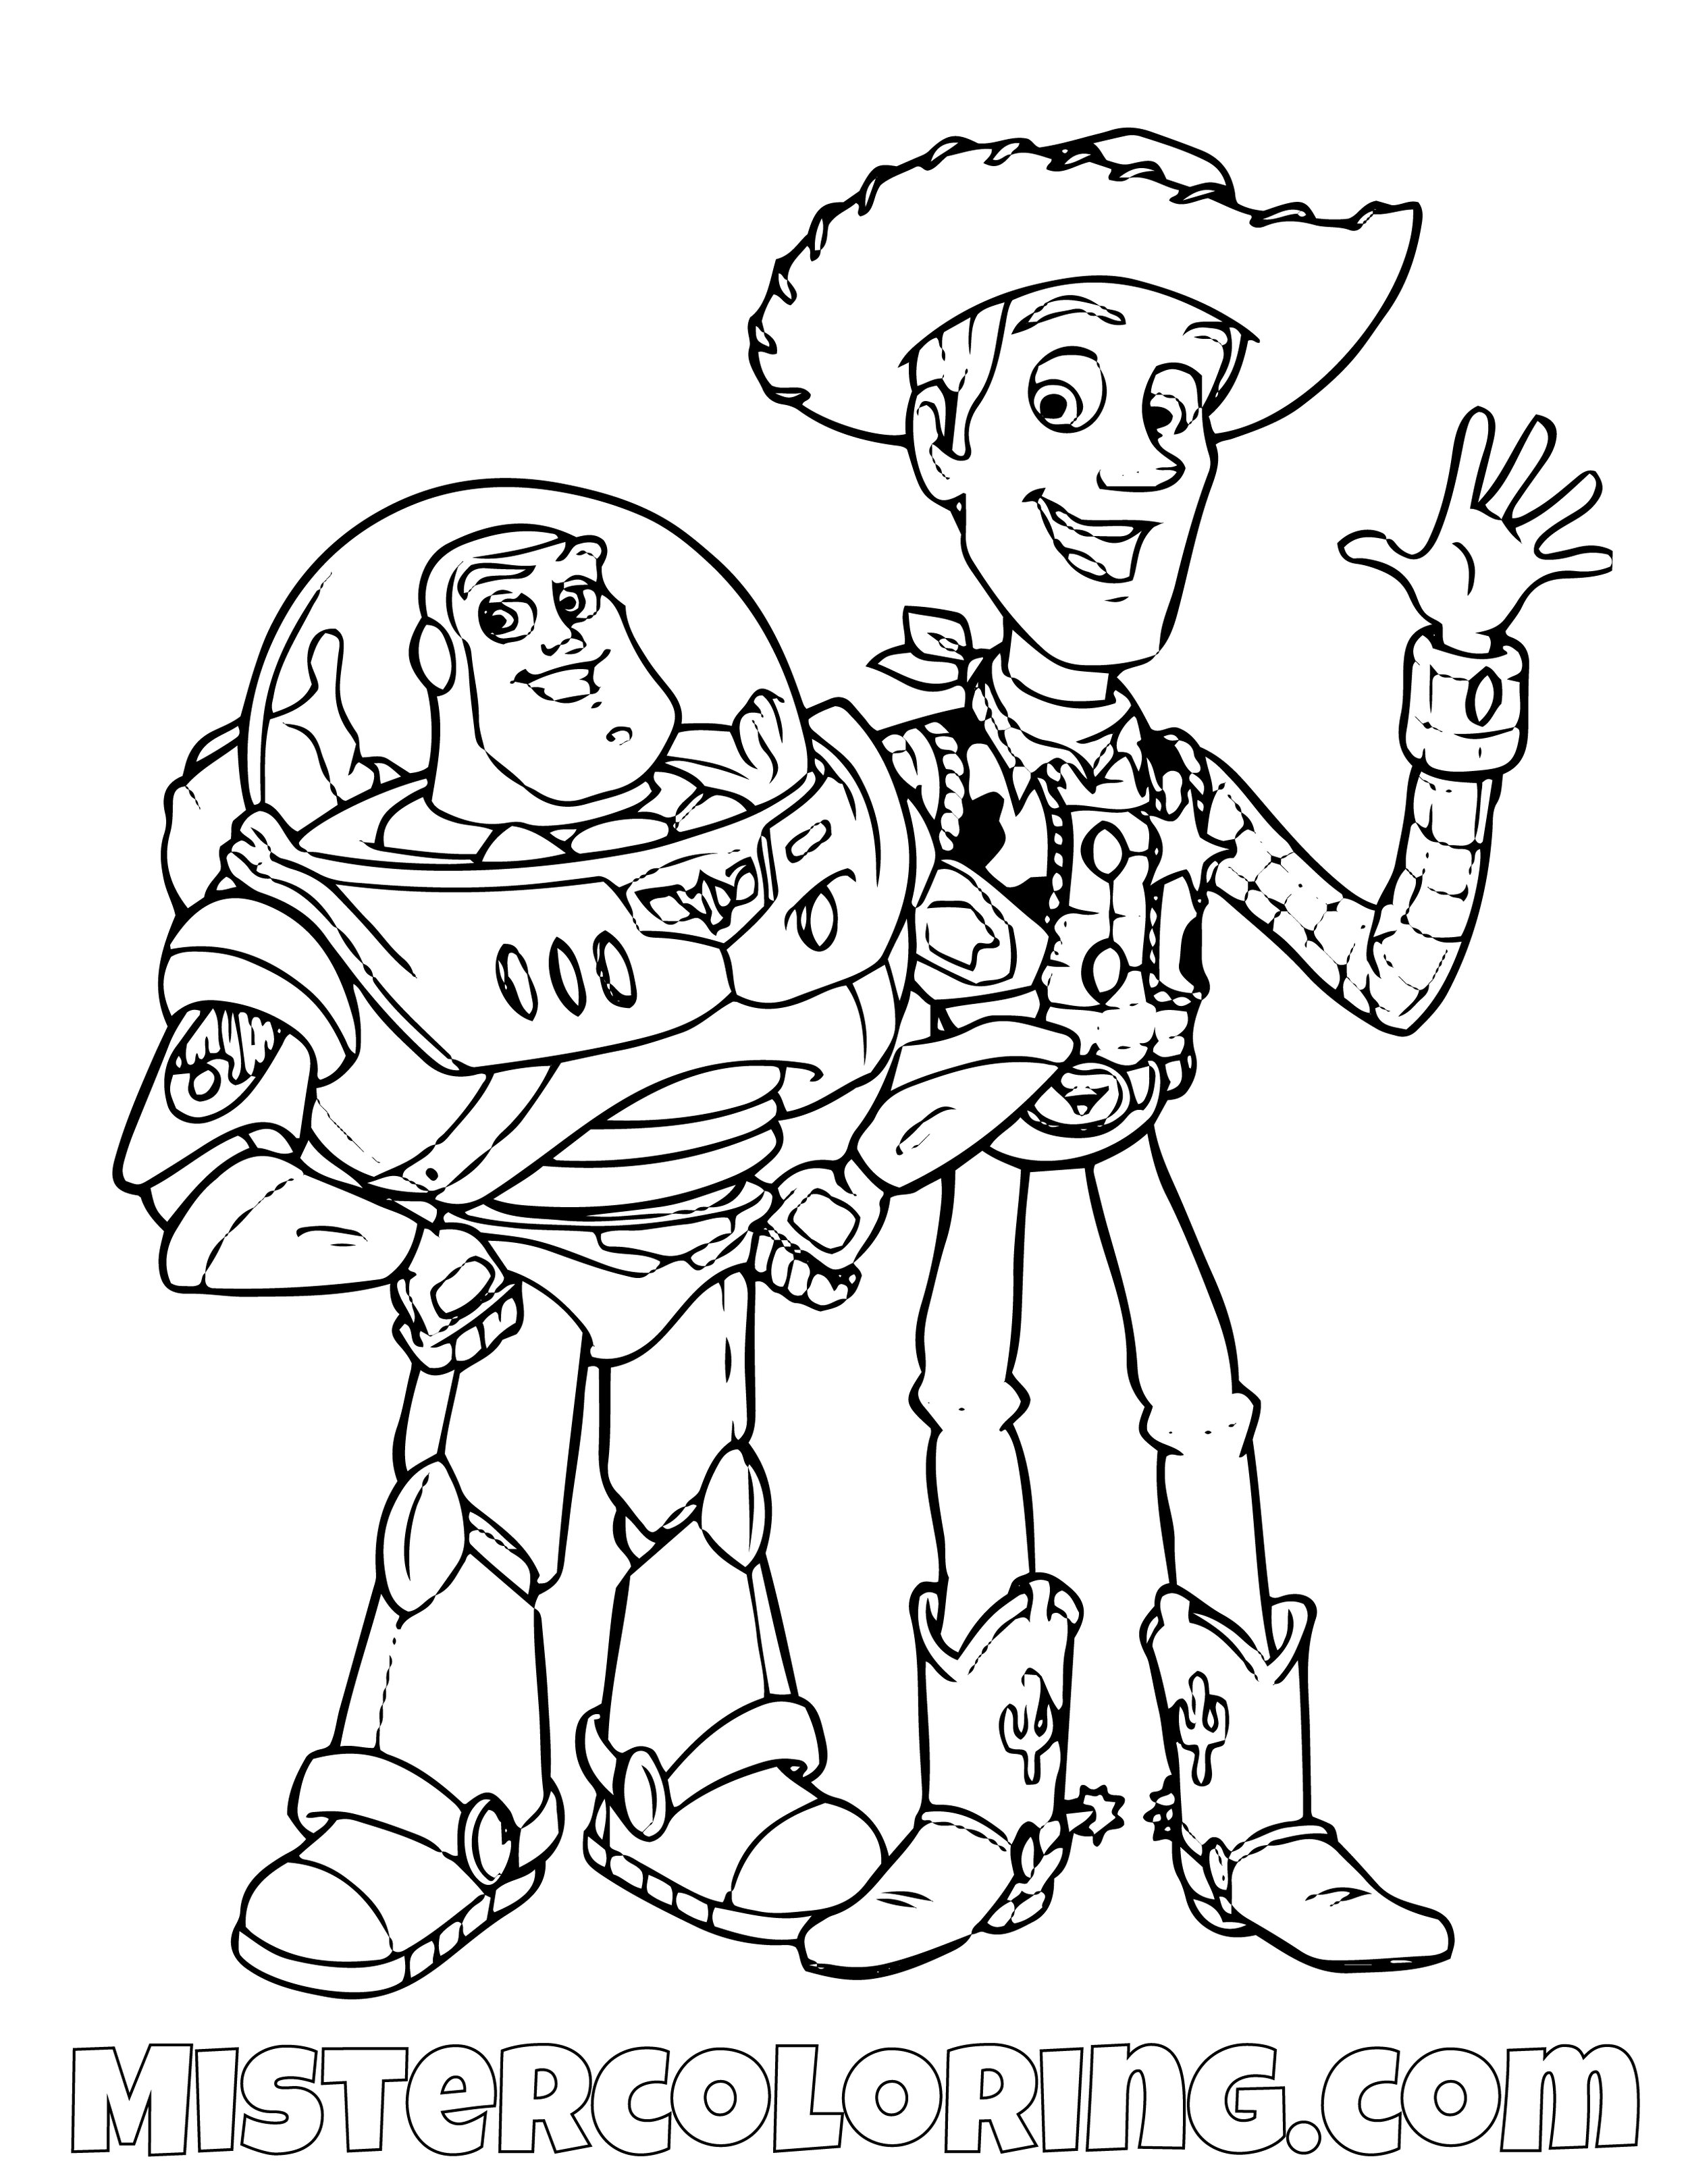 Buzz Lightyear And Sheriff Woody Toy Story Coloring Page